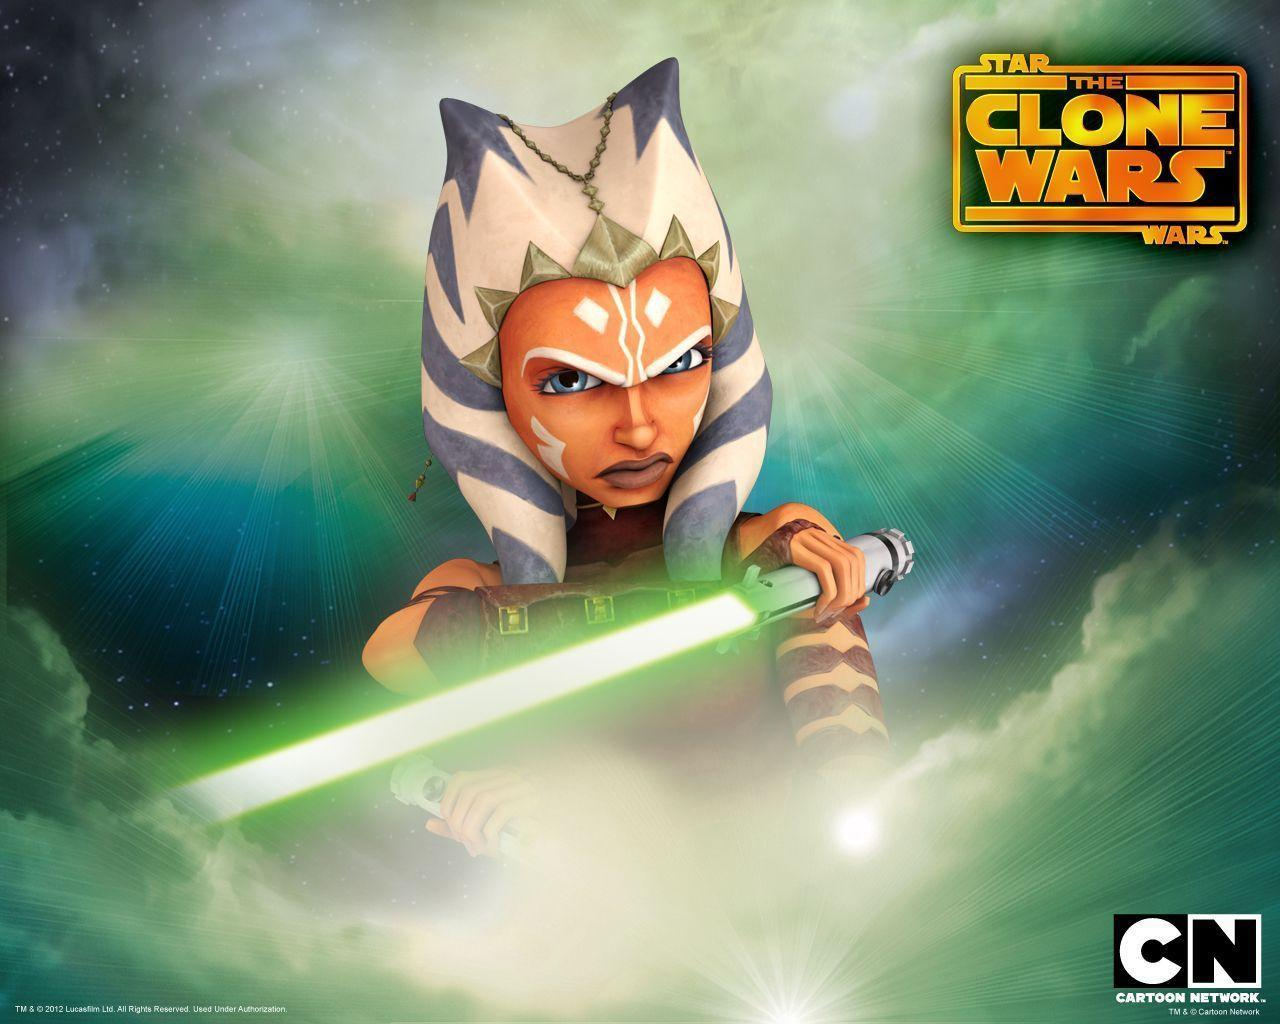 Star Wars The Clone Wars Wallpaper: Star Wars The Clone Wars Wallpapers